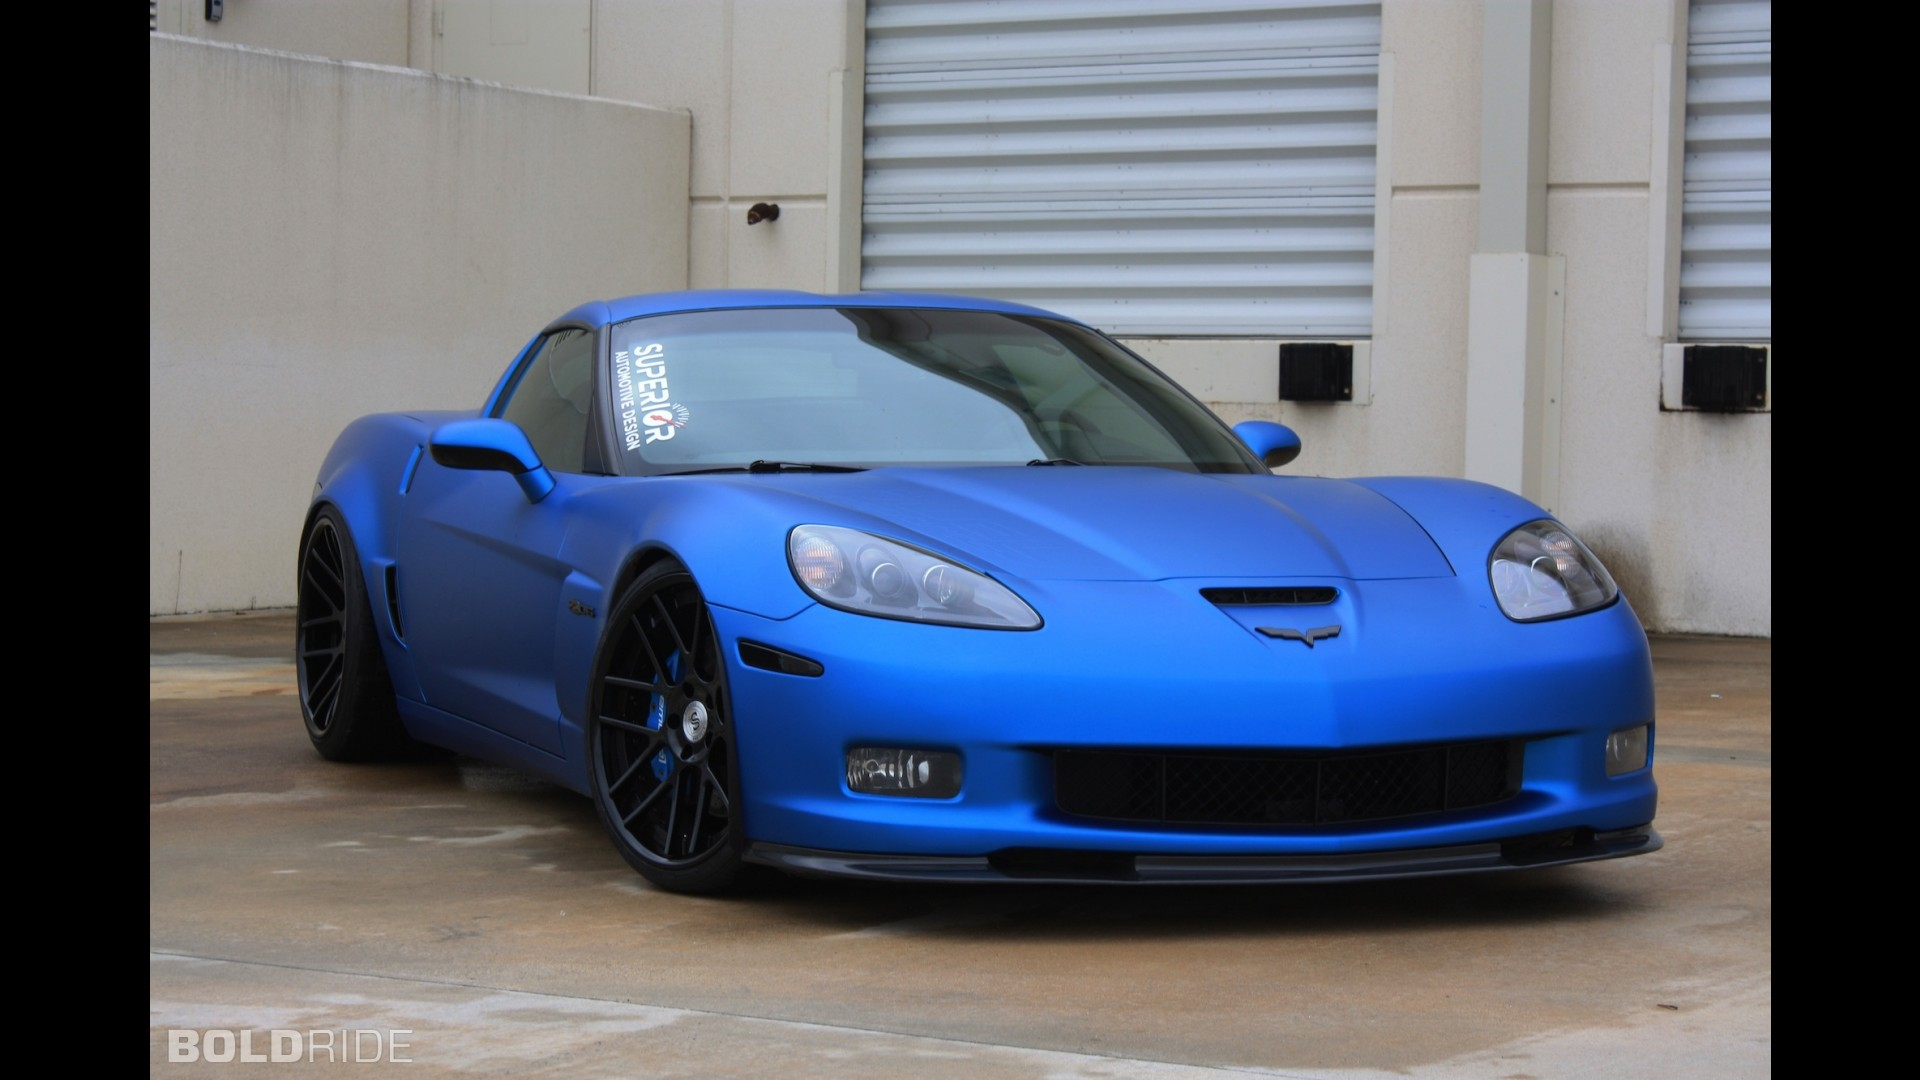 Superior Automotive Design Chevrolet C6 Corvette